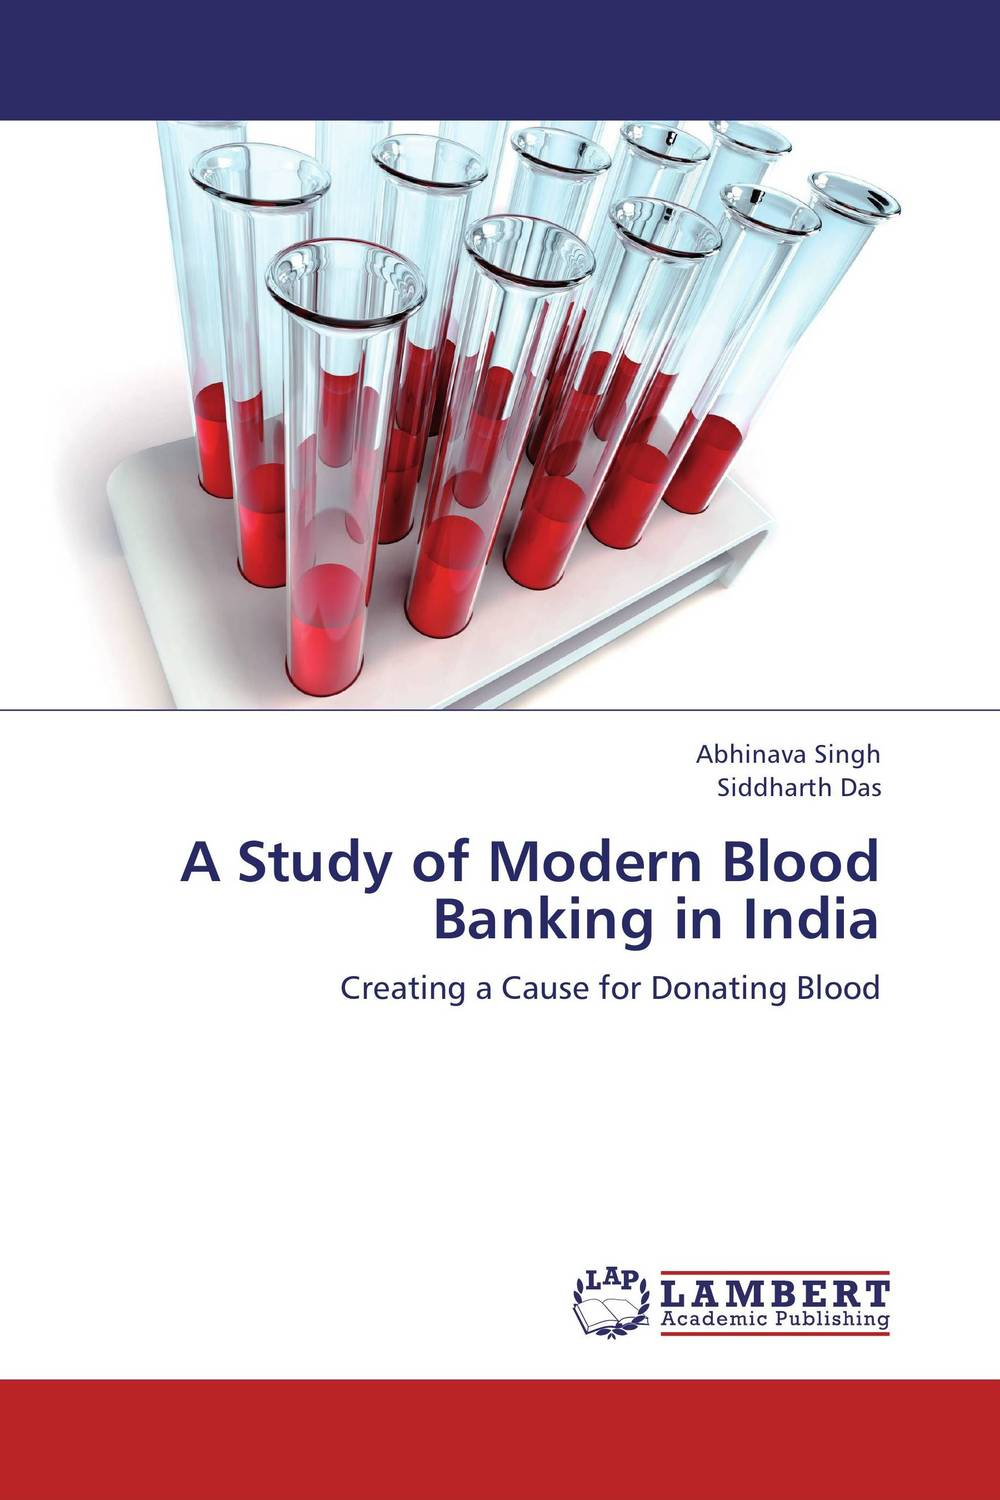 A Study of Modern Blood Banking in India coldplay – a rush of blood to the head lp